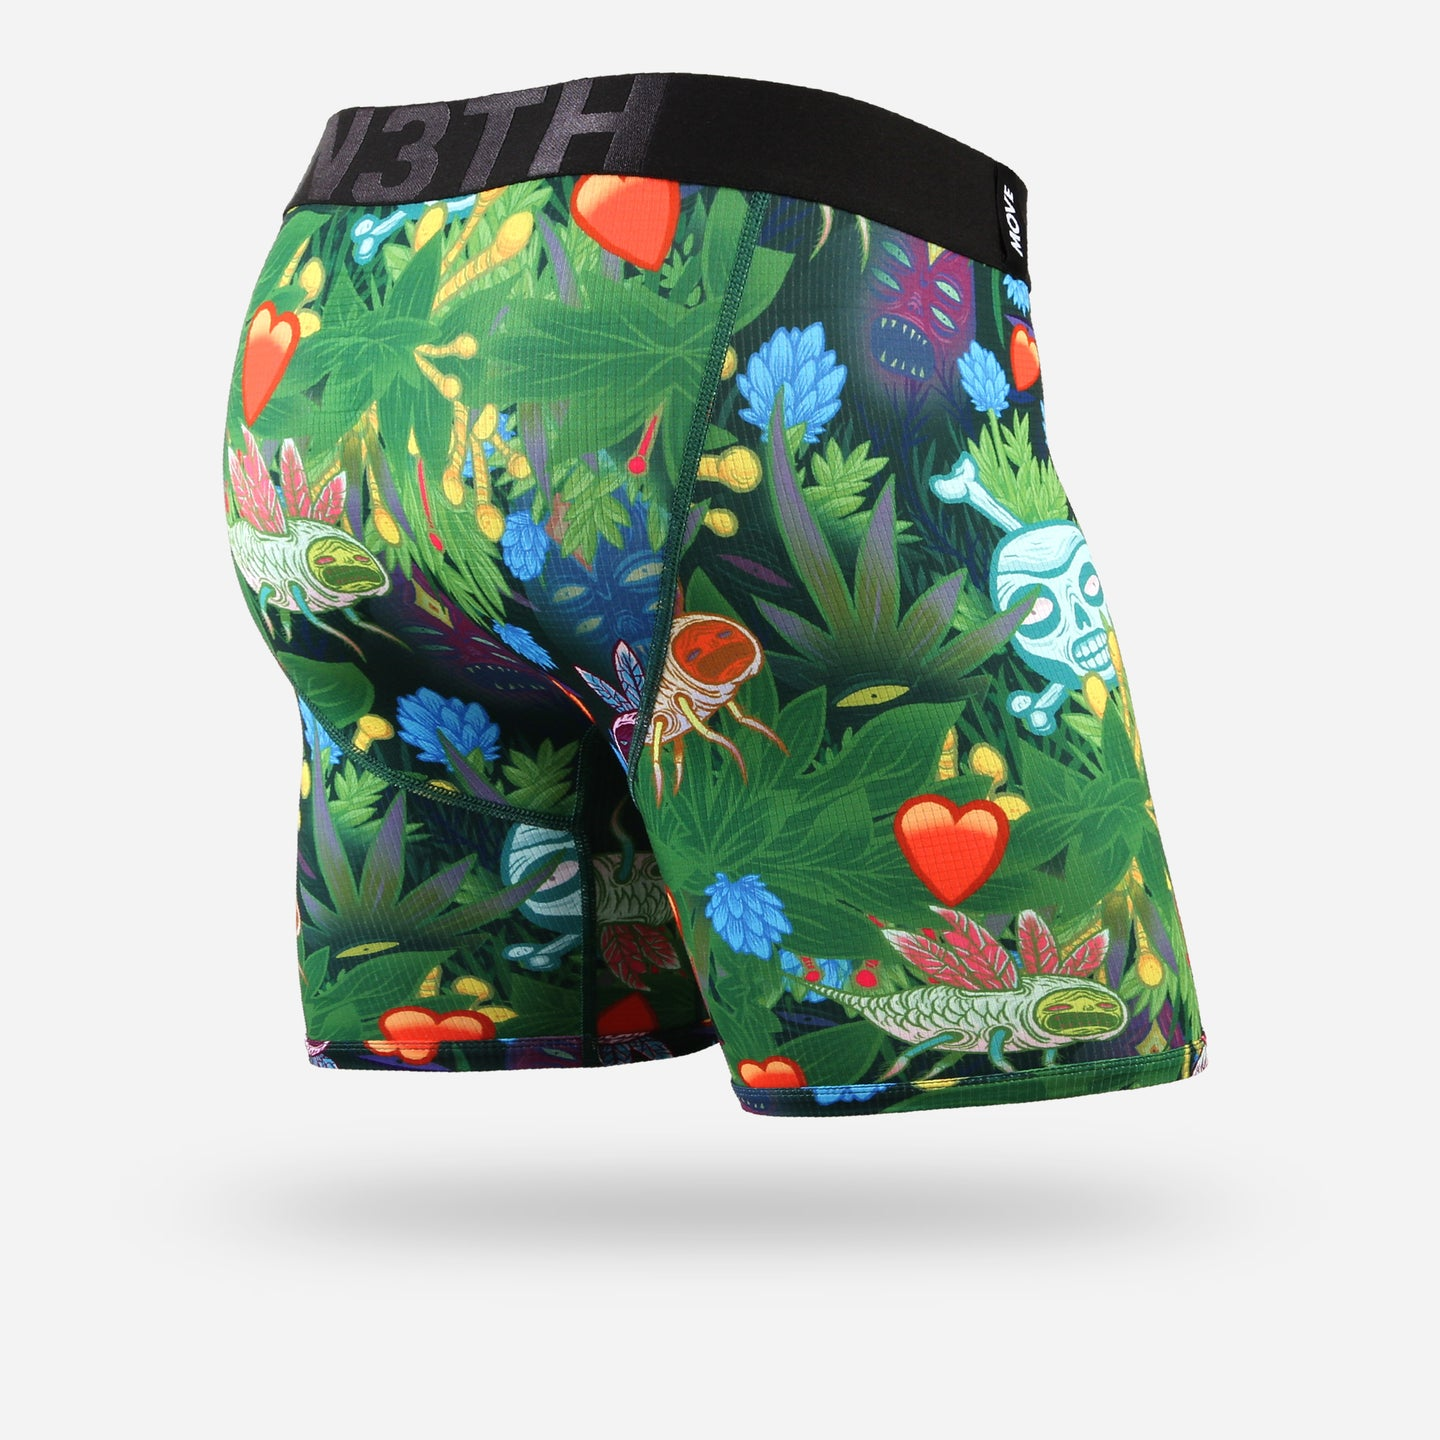 ENTOURAGE BOXER BRIEF: JUNGLE LOVE